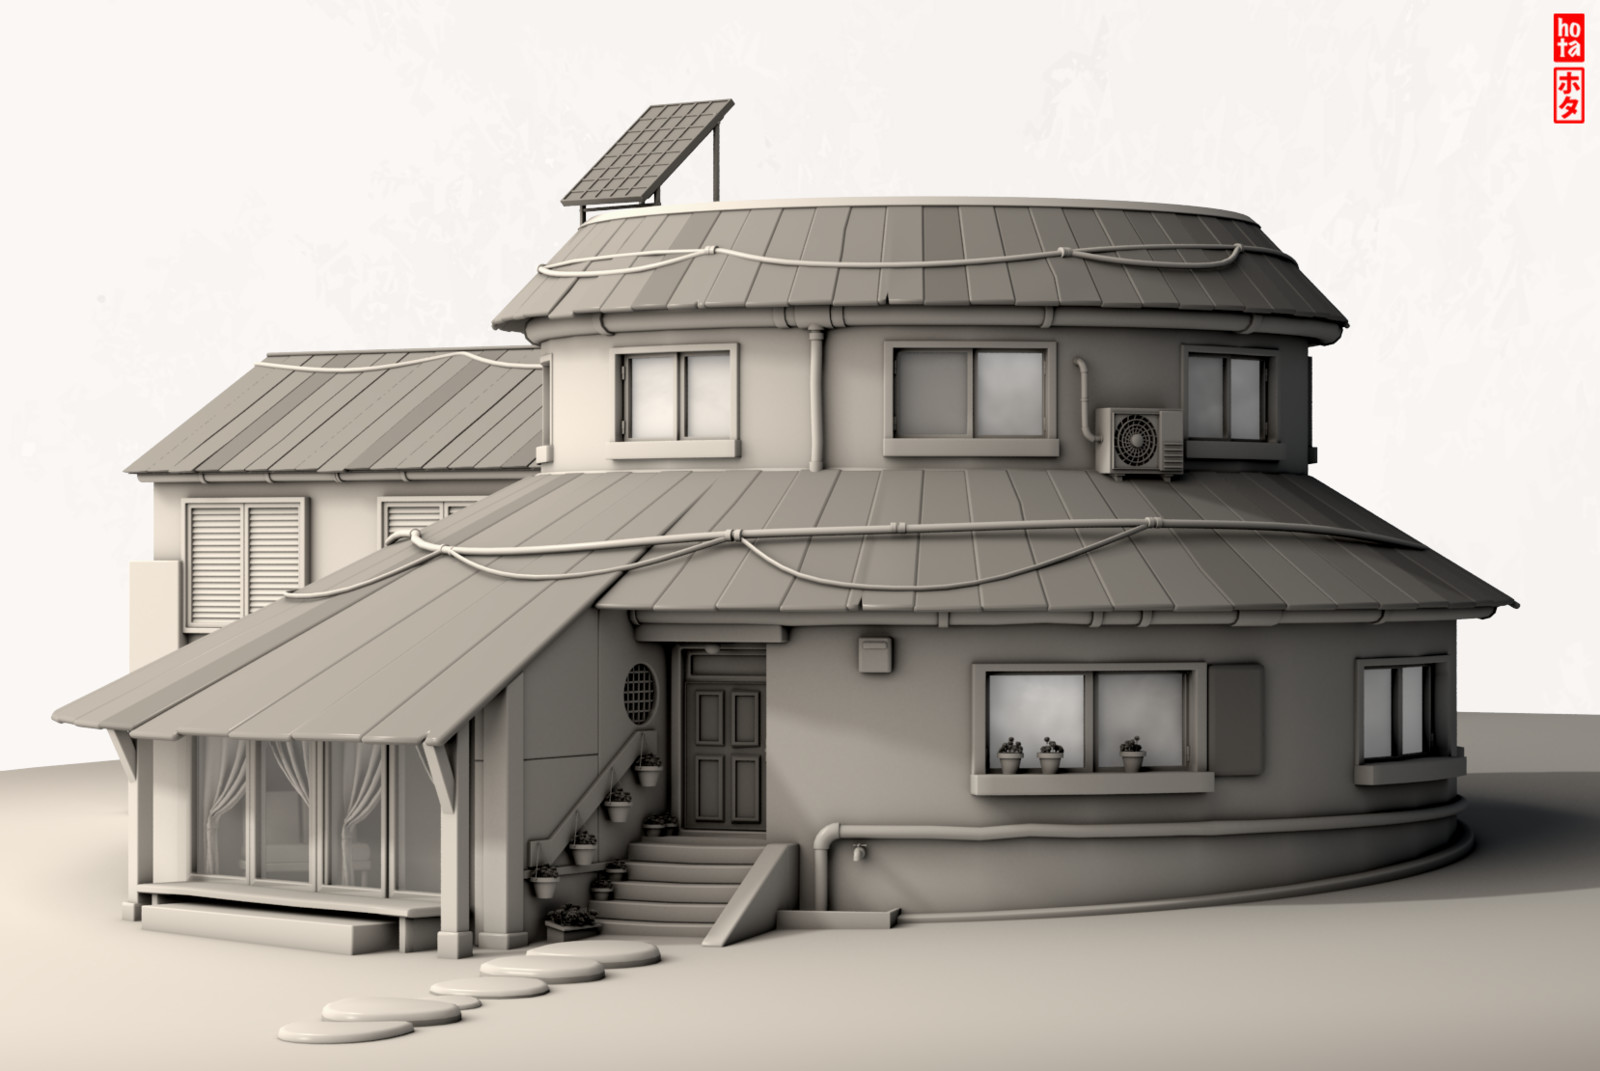 Uzumaki´s family house.